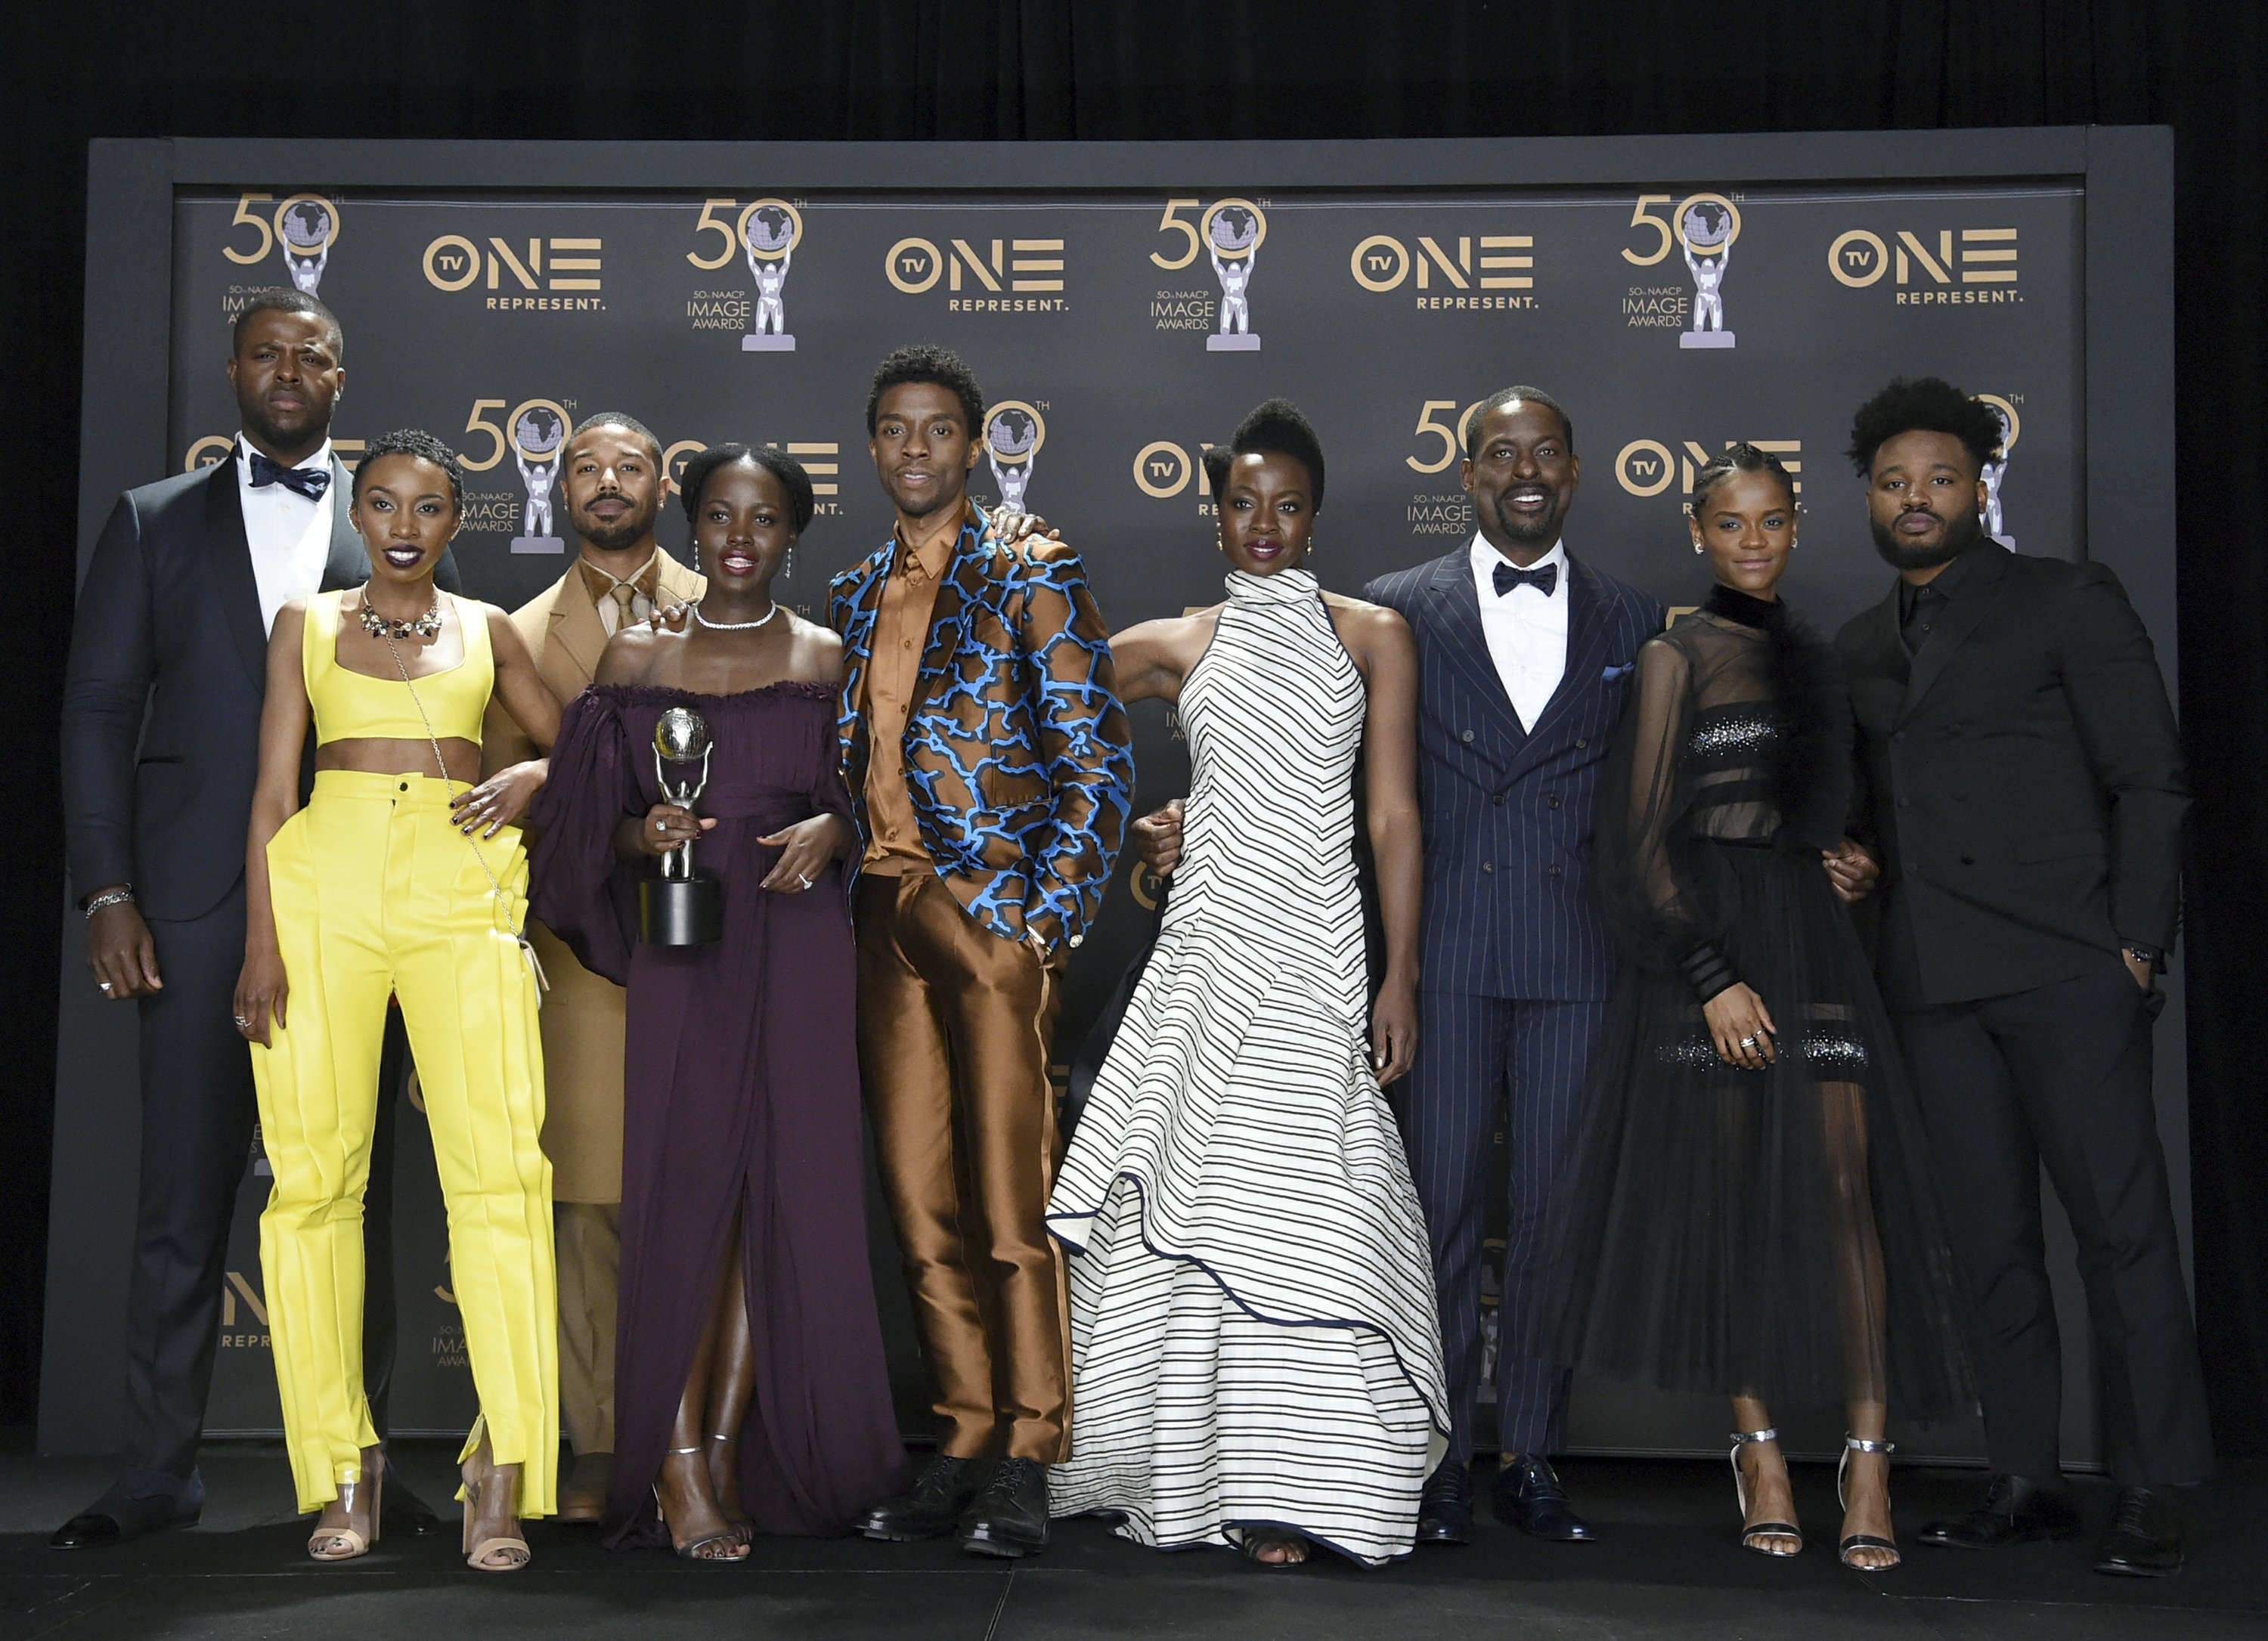 Black Panther cast accepting top awards at 50th annual NAACP awards.